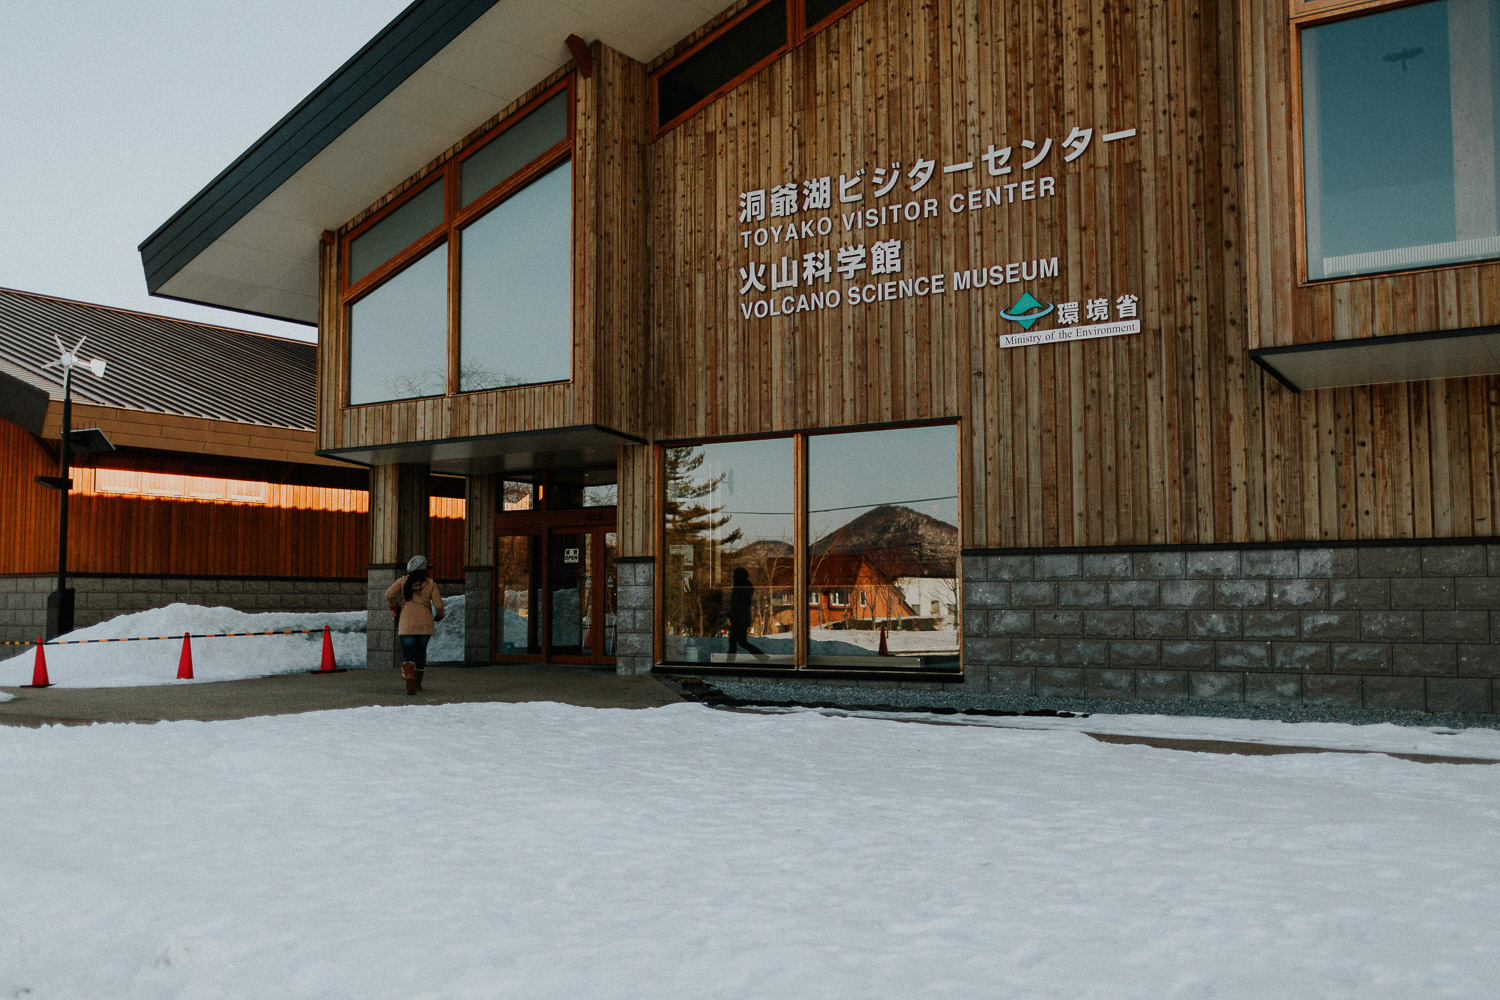 Image of Toyako Visitor Center